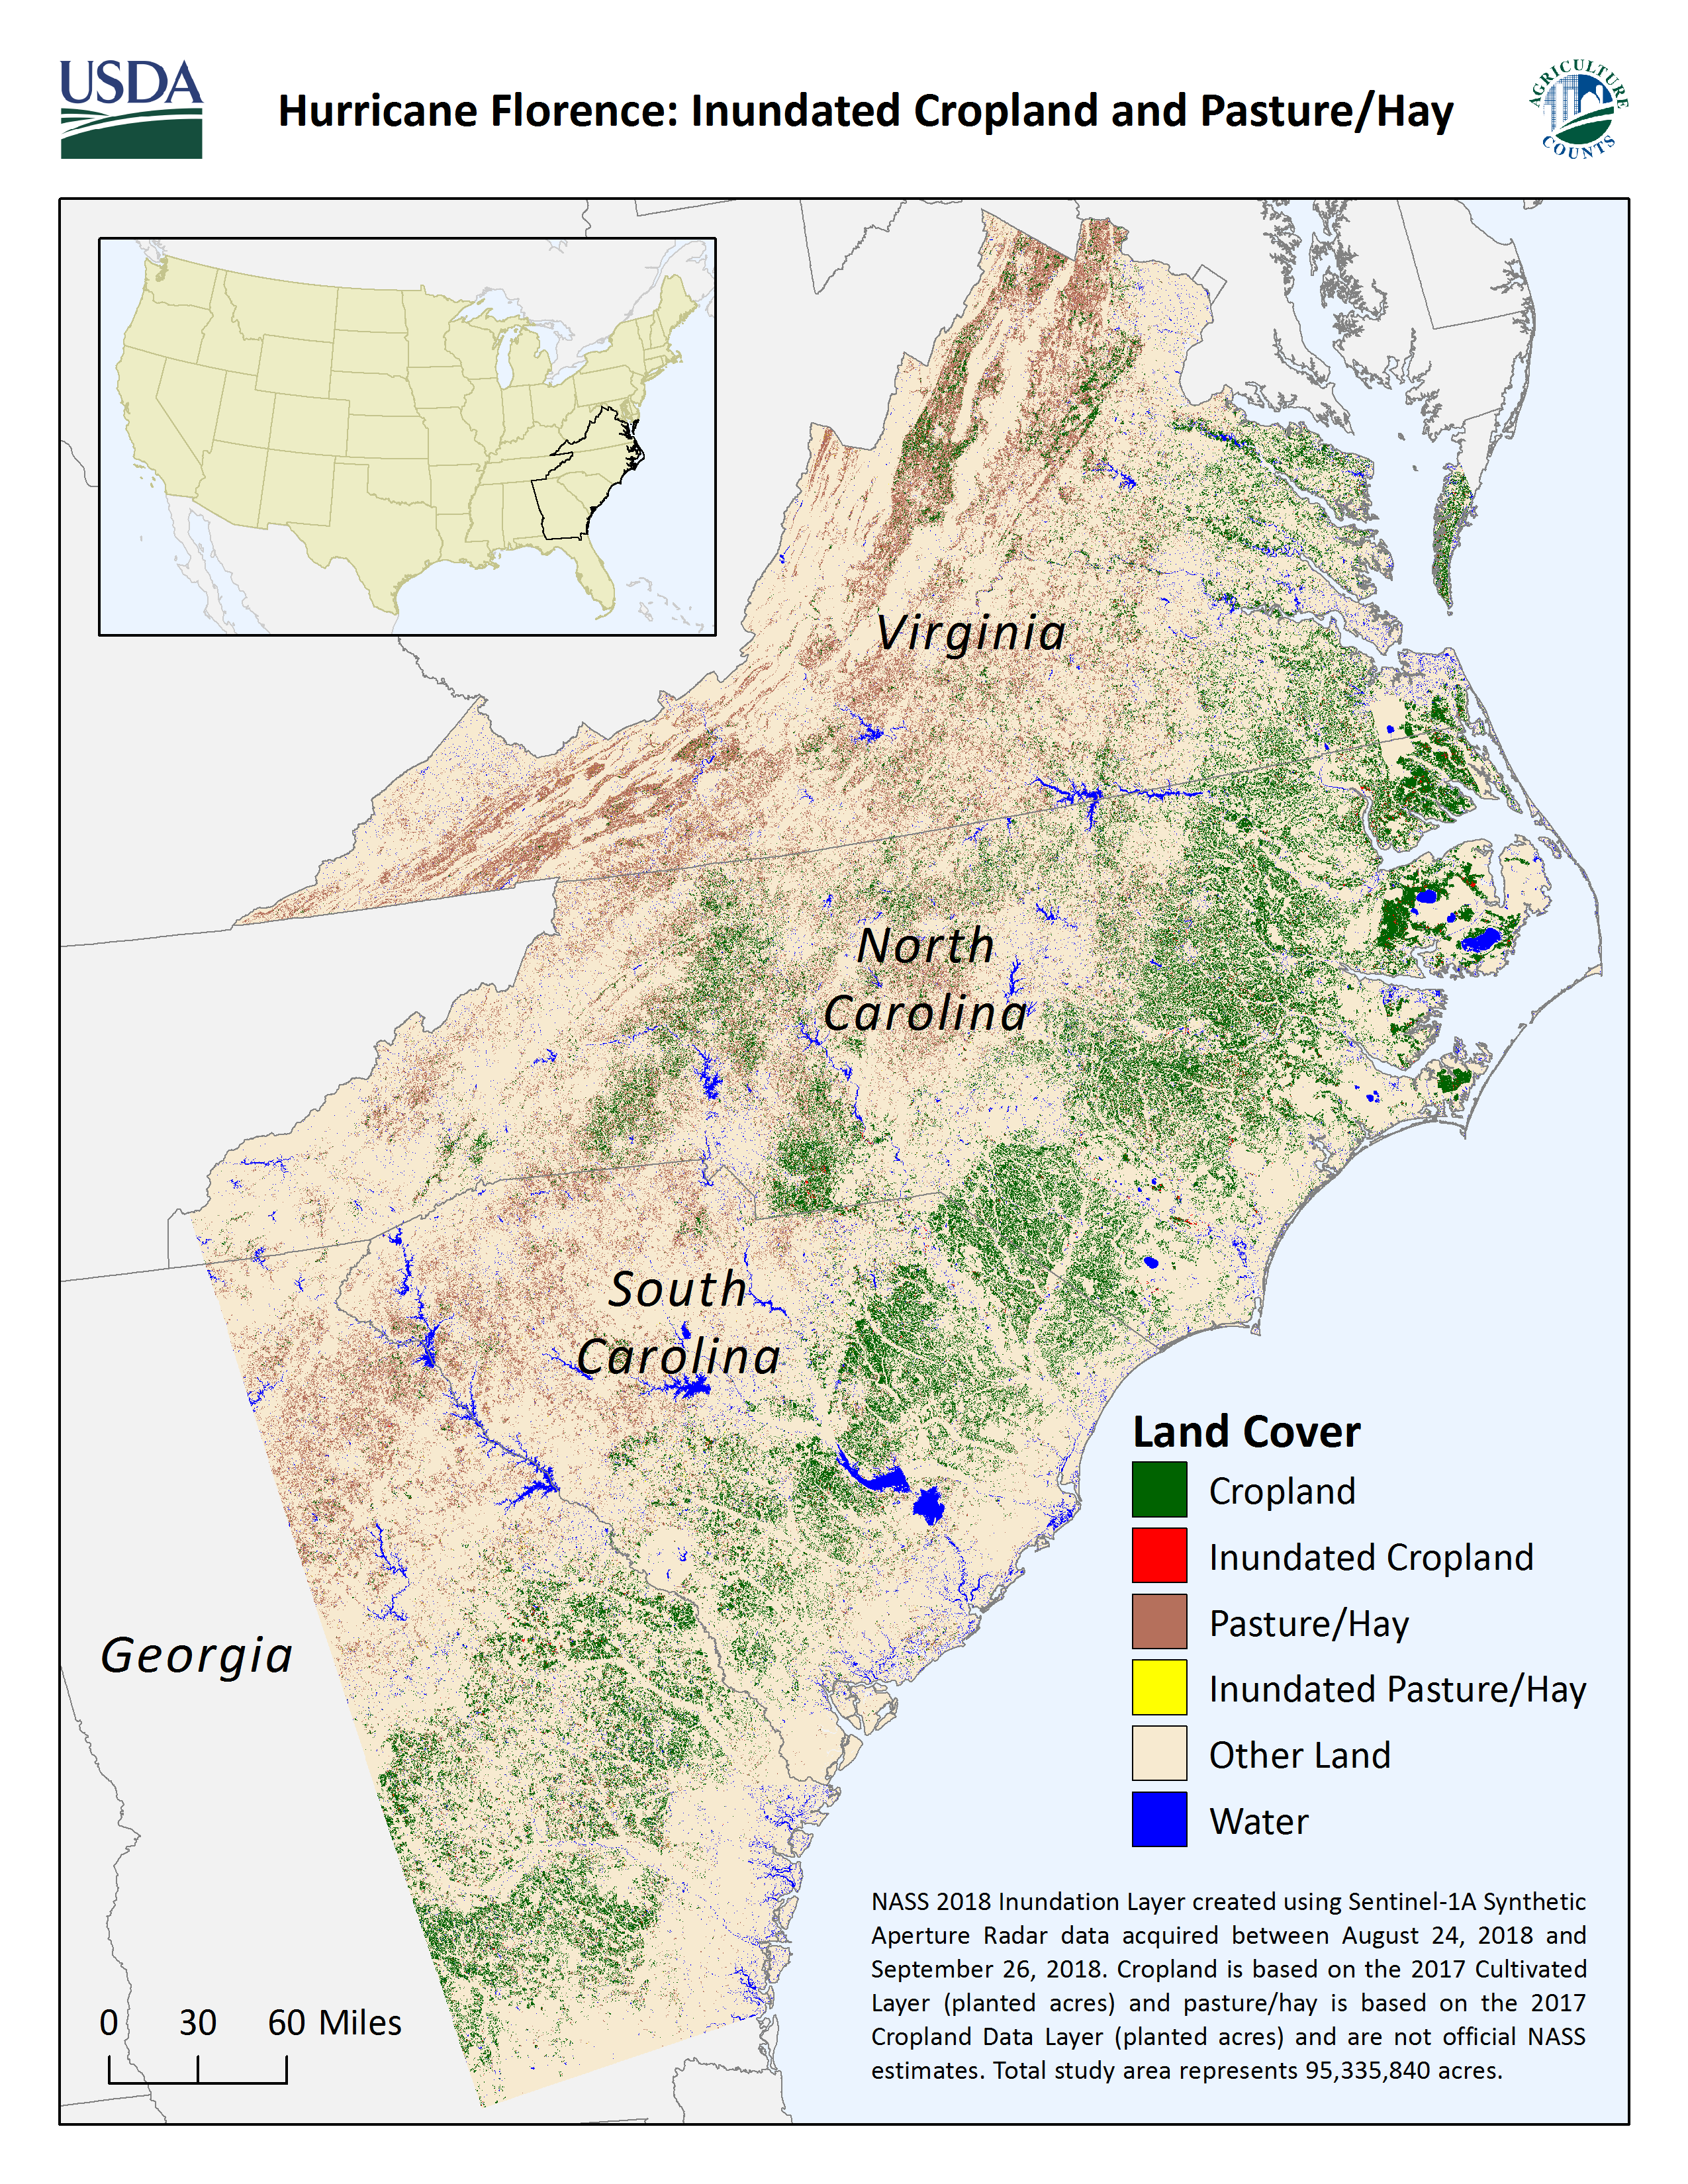 Map of Inundated Cropland and Pasture/Hay from Hurrican Florence